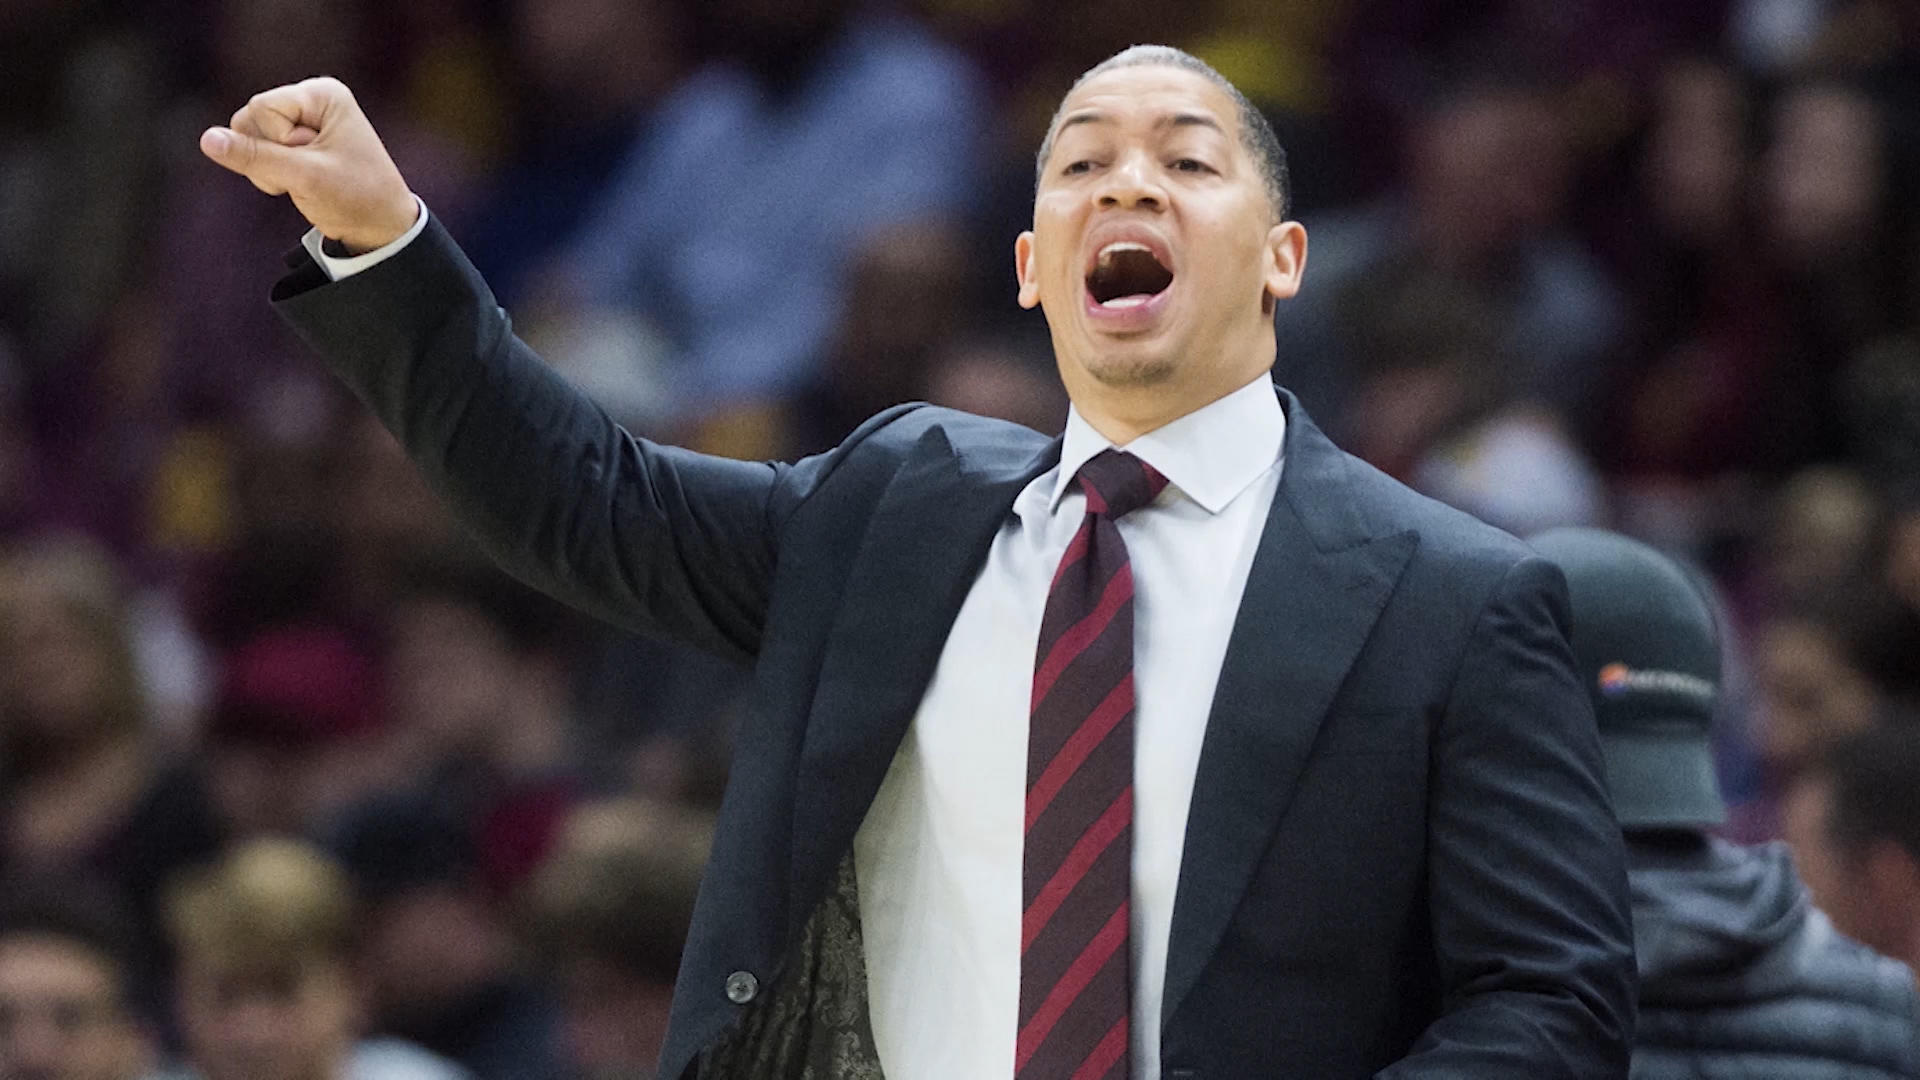 Lakers coaching rumors: Tyronn Lue, Monty Williams earn second interviews; Jeanie Buss to be present for both meetings